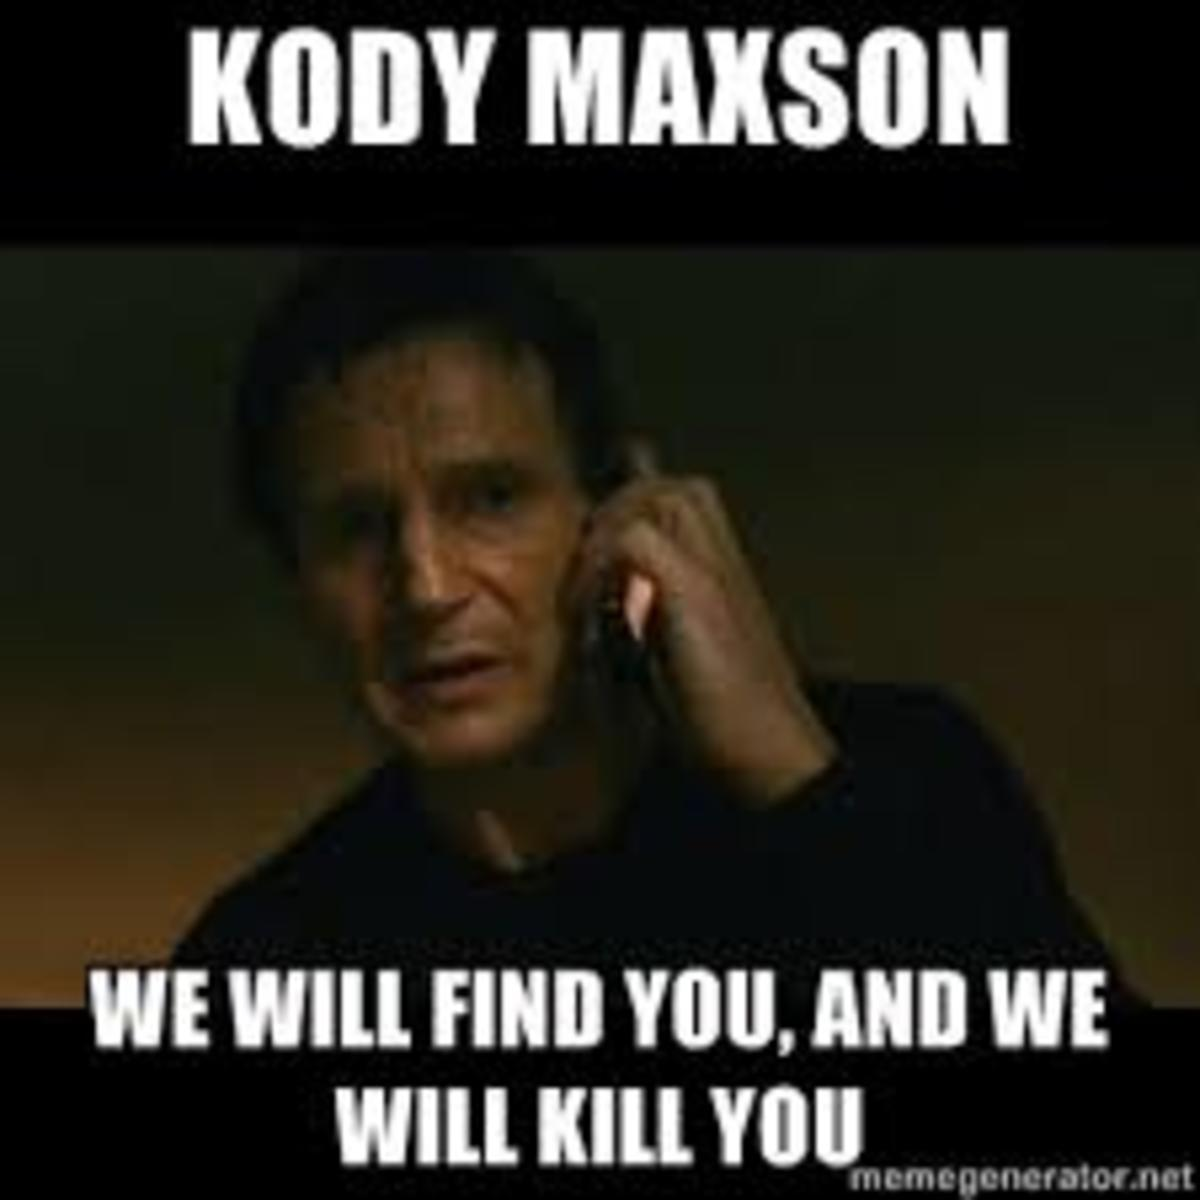 An example of the public jumping on the bandwagon throughout the following reporting of Anonymous's publication of Kody Maxson's information